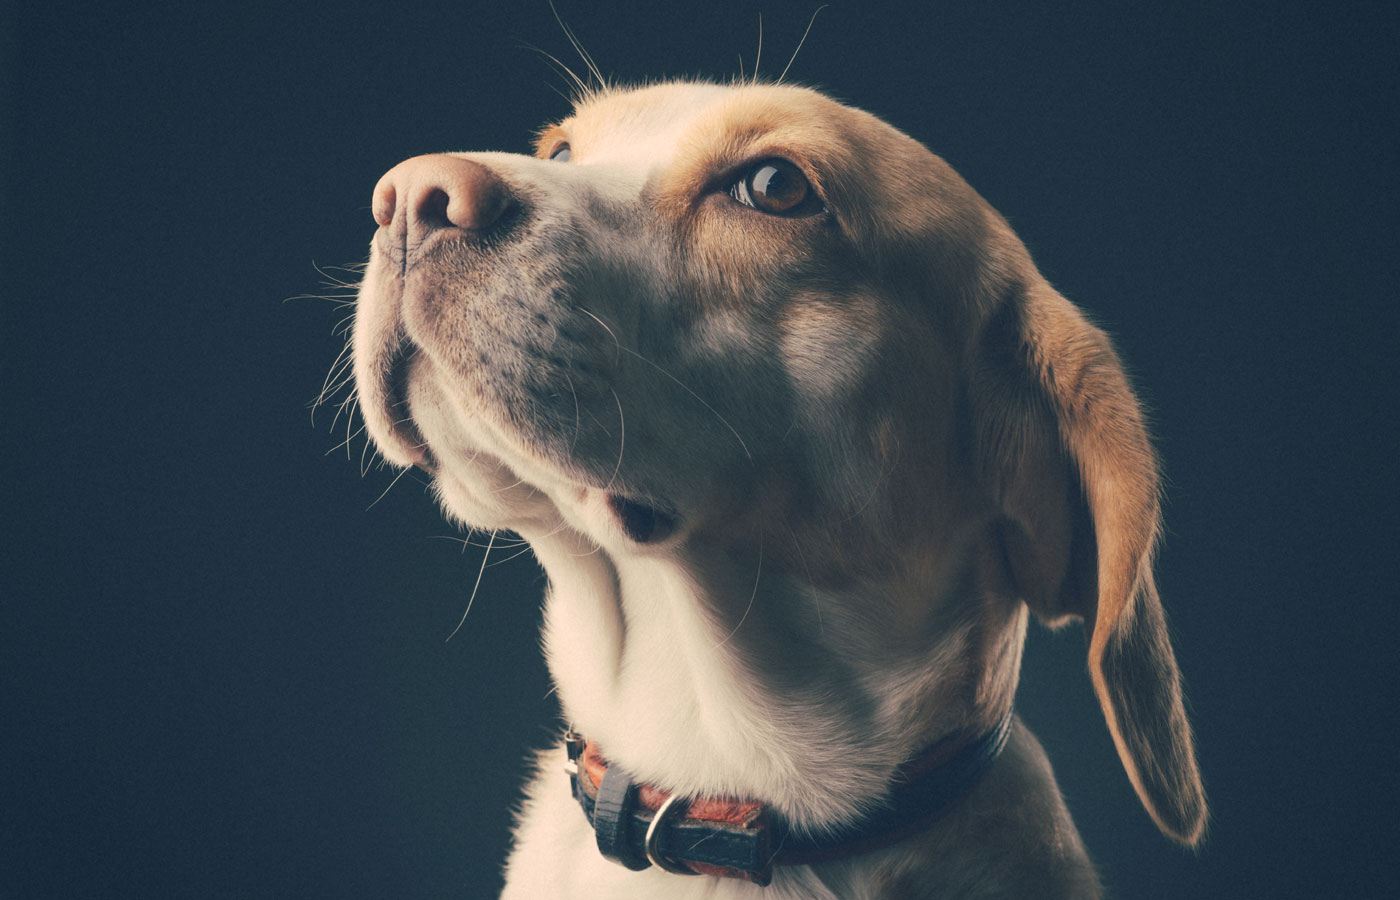 Portrait of a dog - beagle